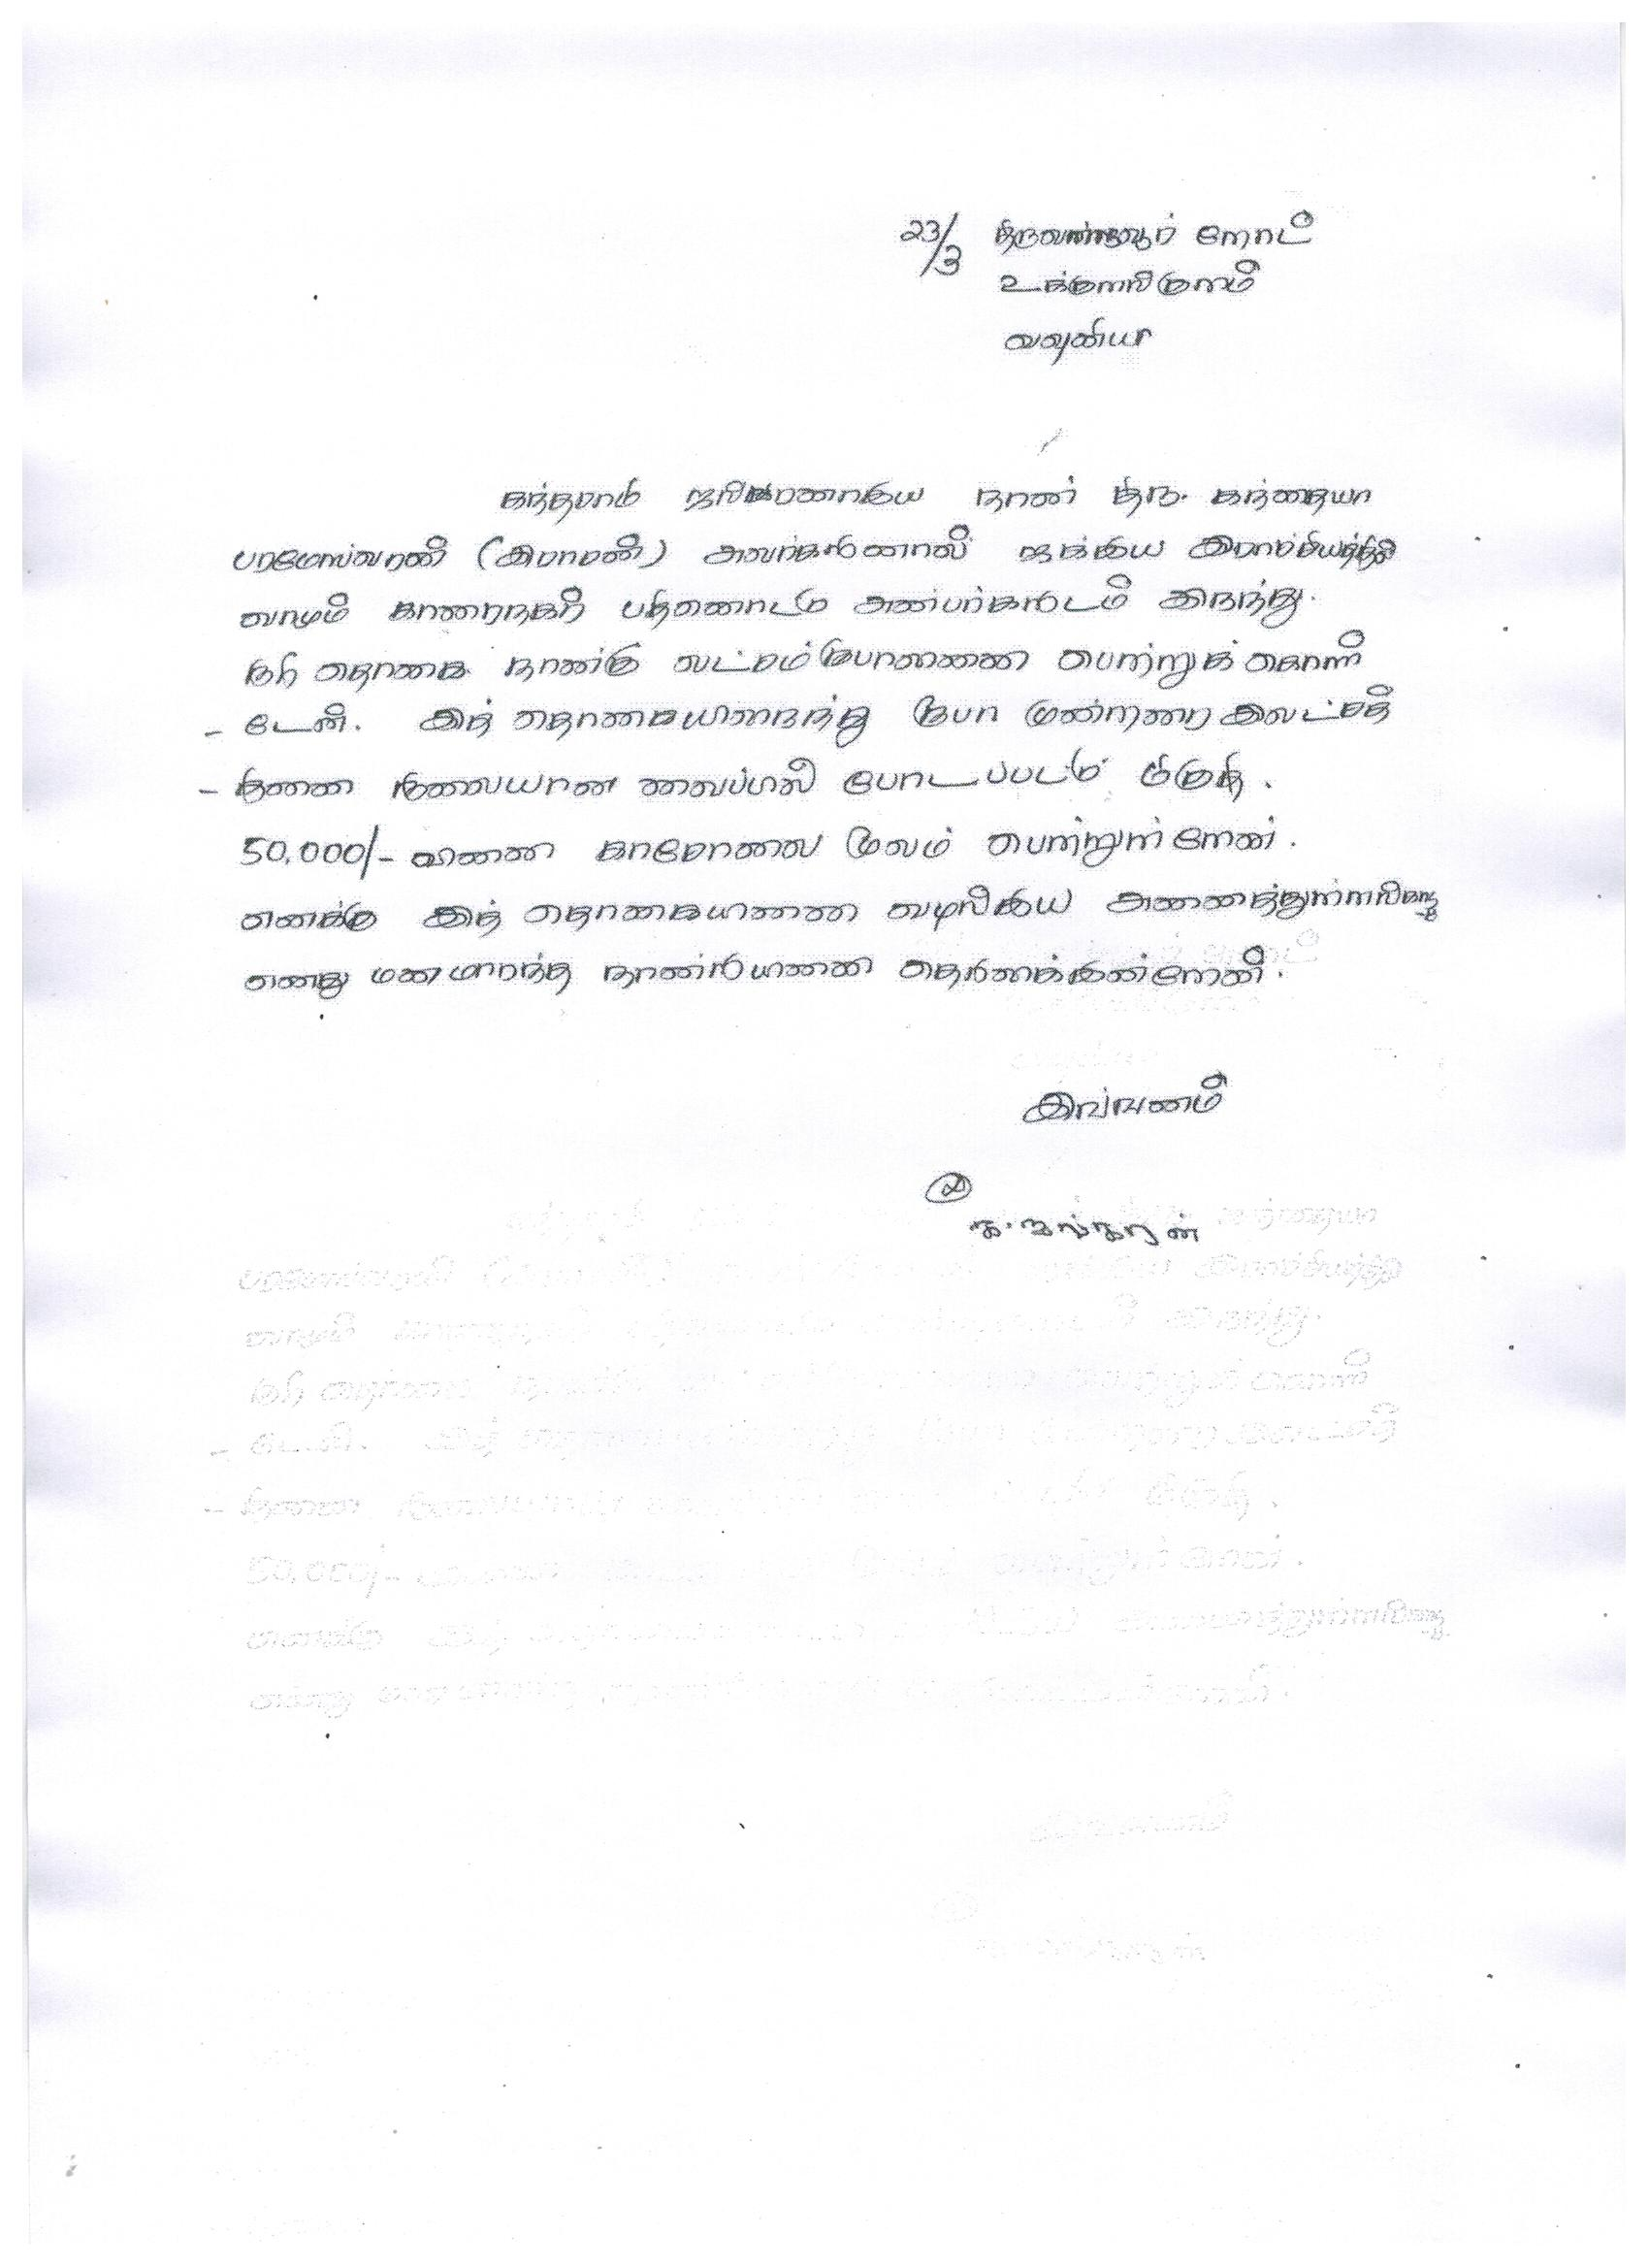 Ainkaran's letter of thanks